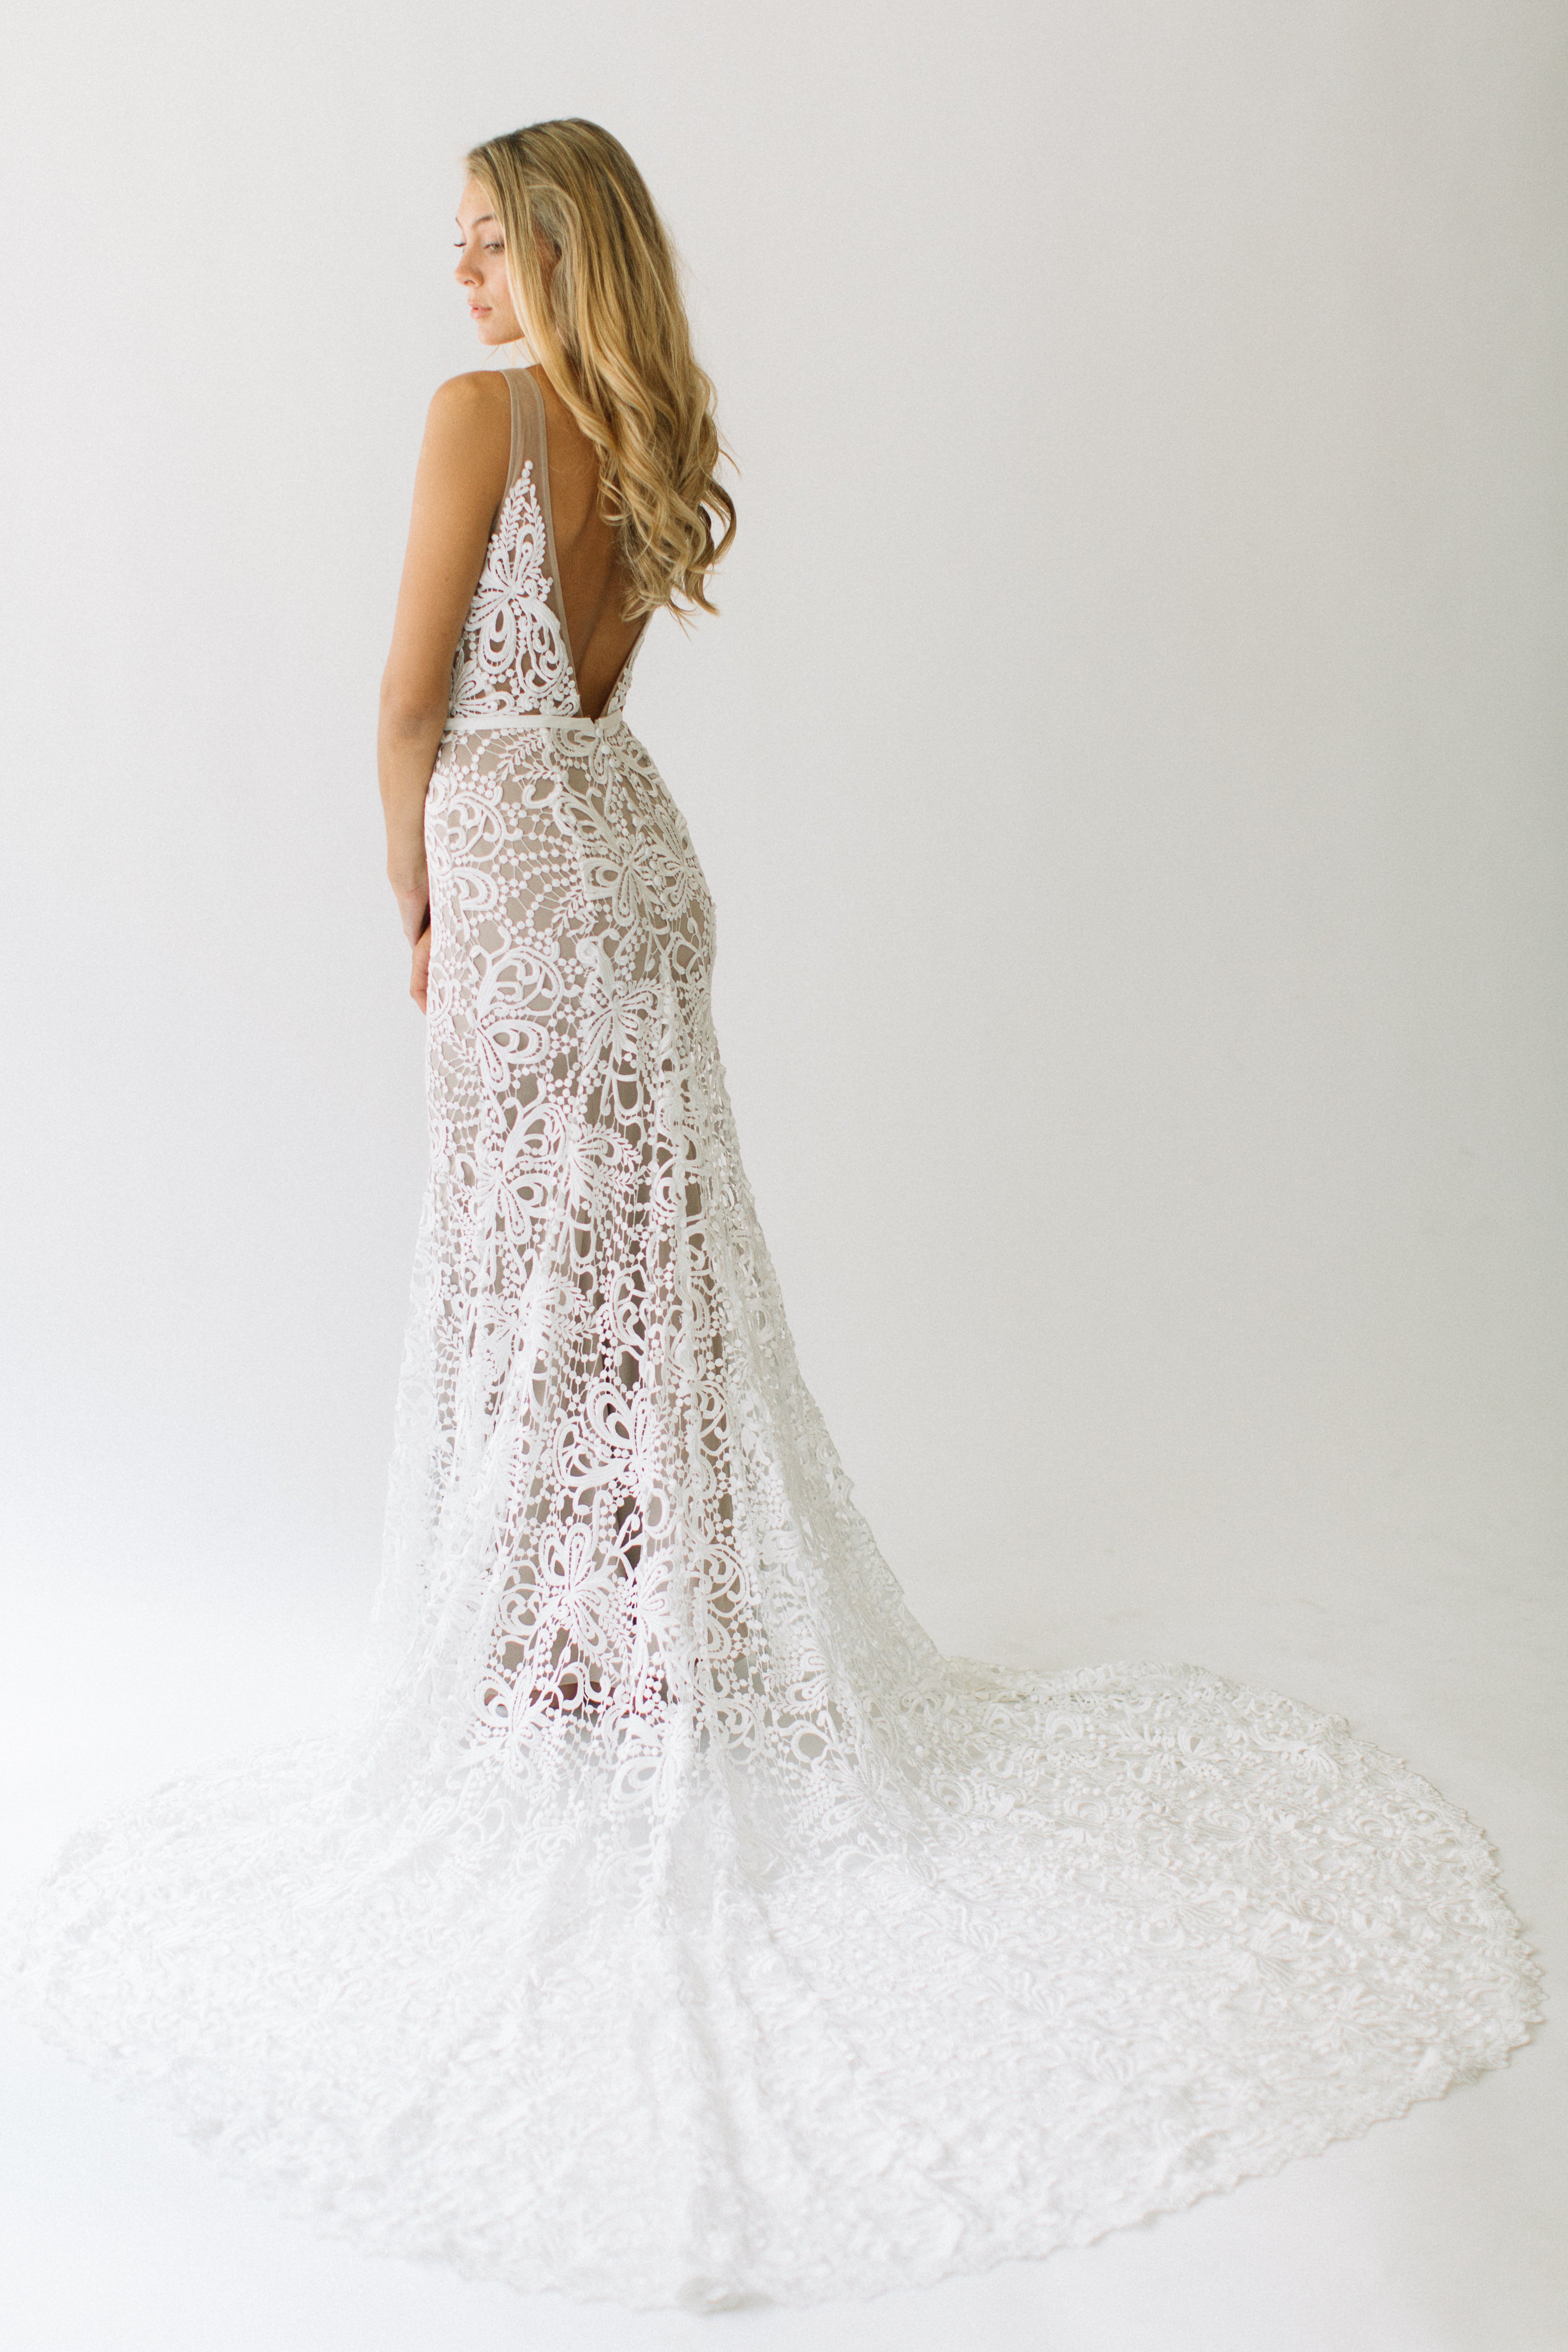 The Very Best Wedding Dresses For Curvy Brides B Loved